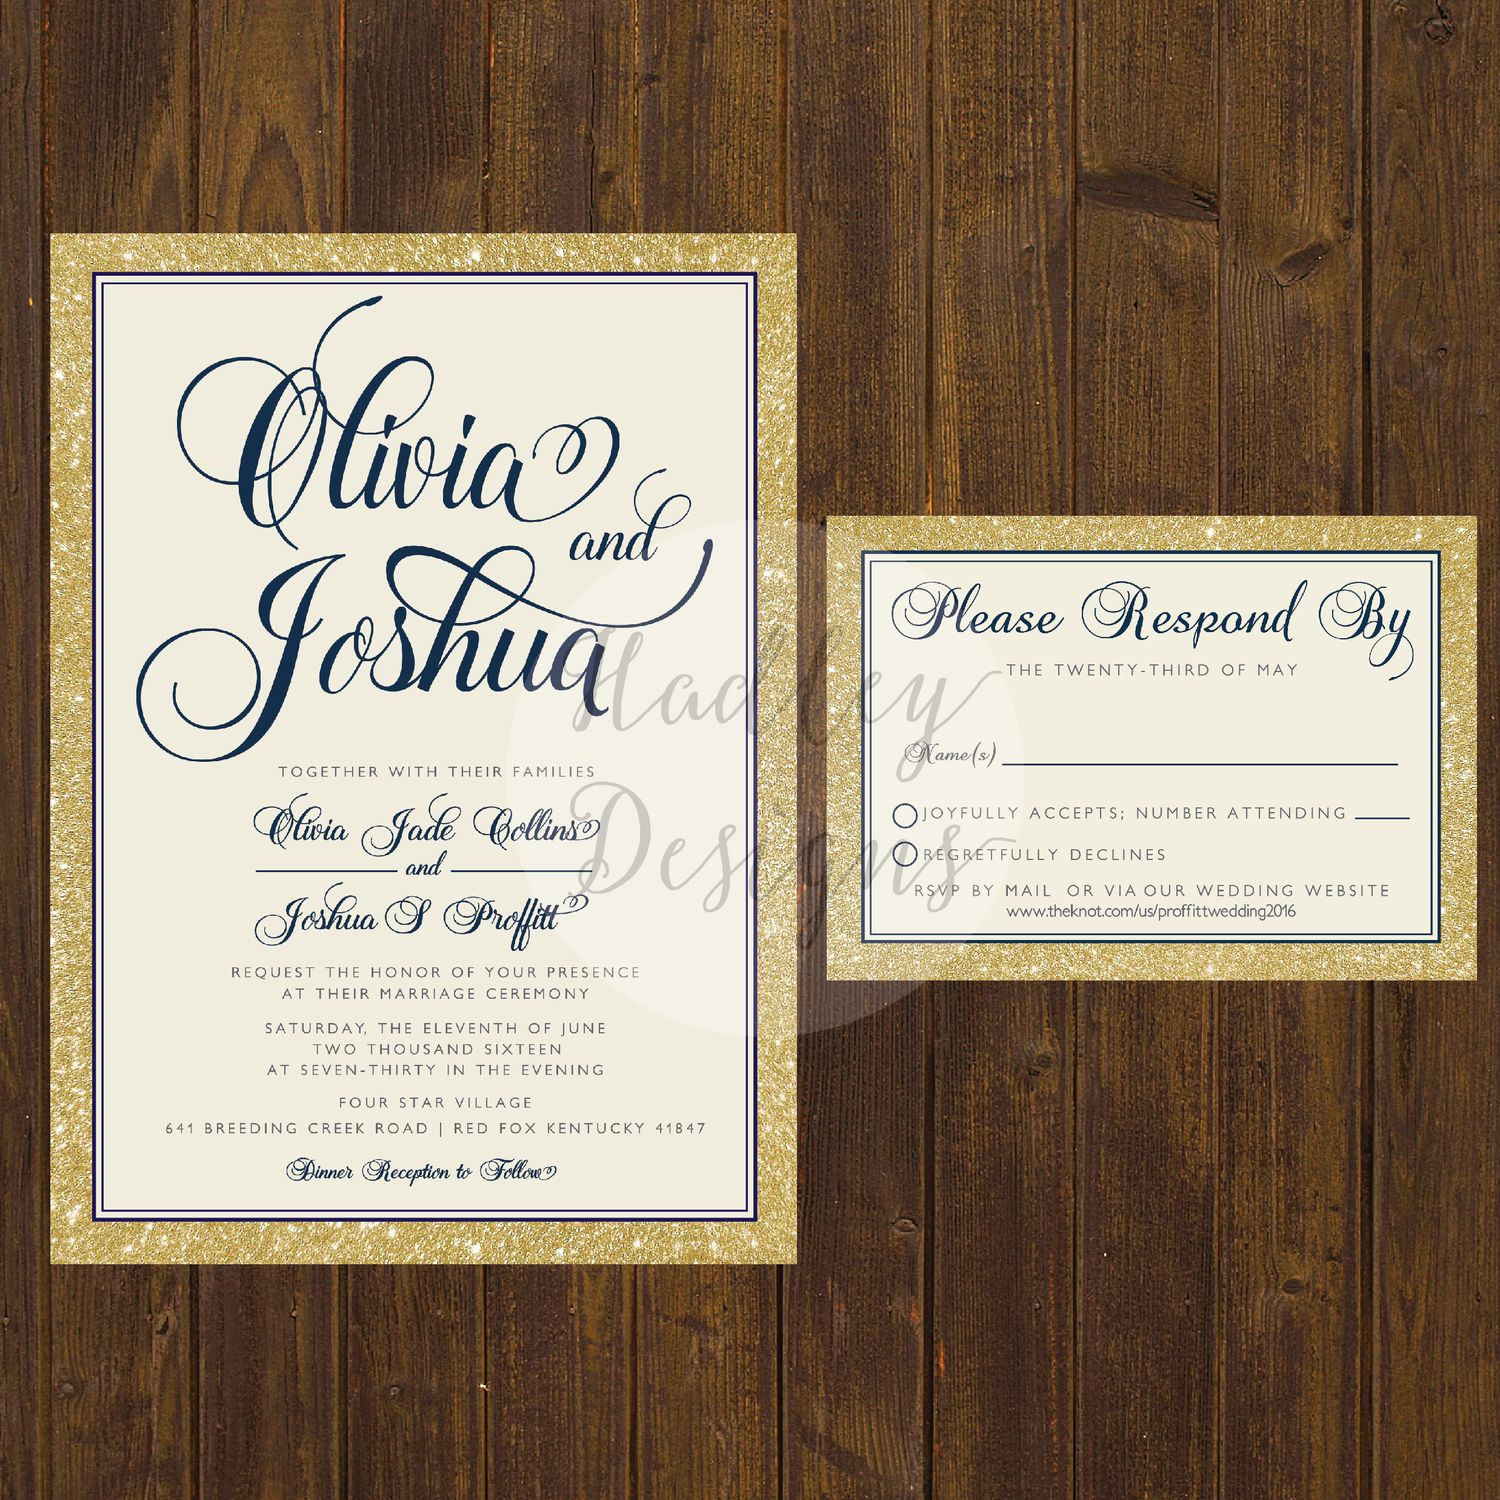 Elegant Wedding Invitations, Classic Wedding Invitations, Simple ...